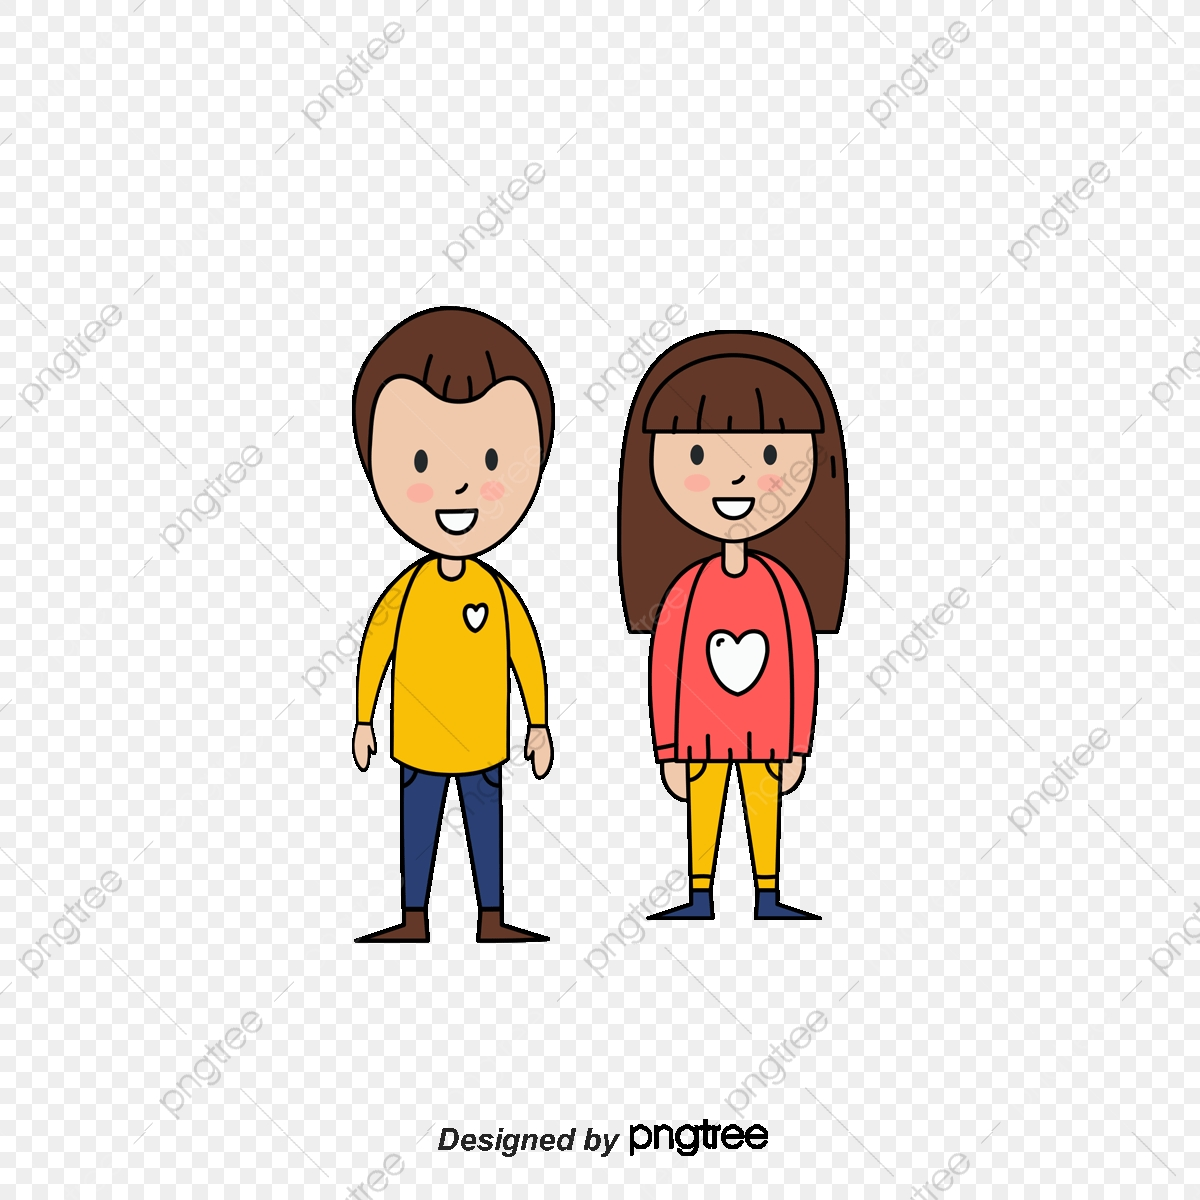 Cartoon Characters Mom And Dad Mom And Dad Cartoon Character Png